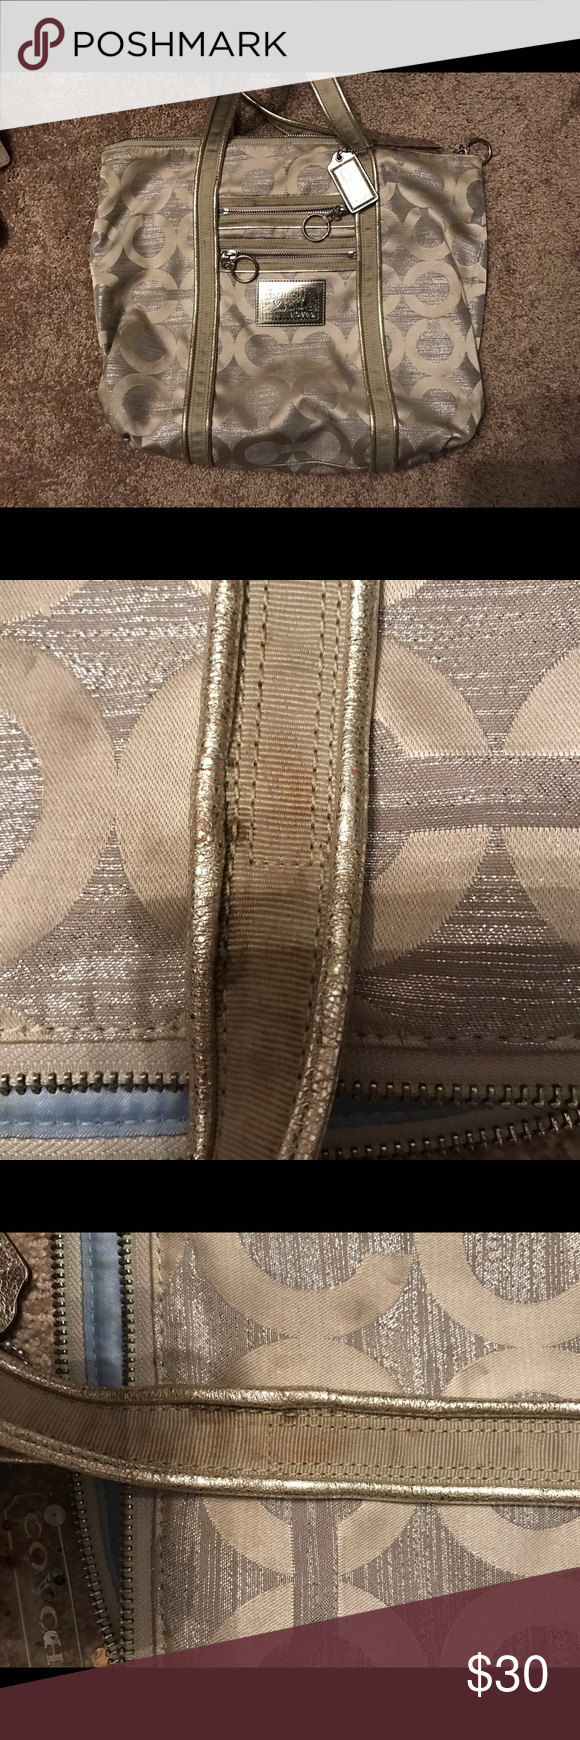 Coach Poppy Silver Purse Coach silver purse. Dirty, needs good cleaning. Has spots on handles and on inside lining. Coach Bags Shoulder Bags